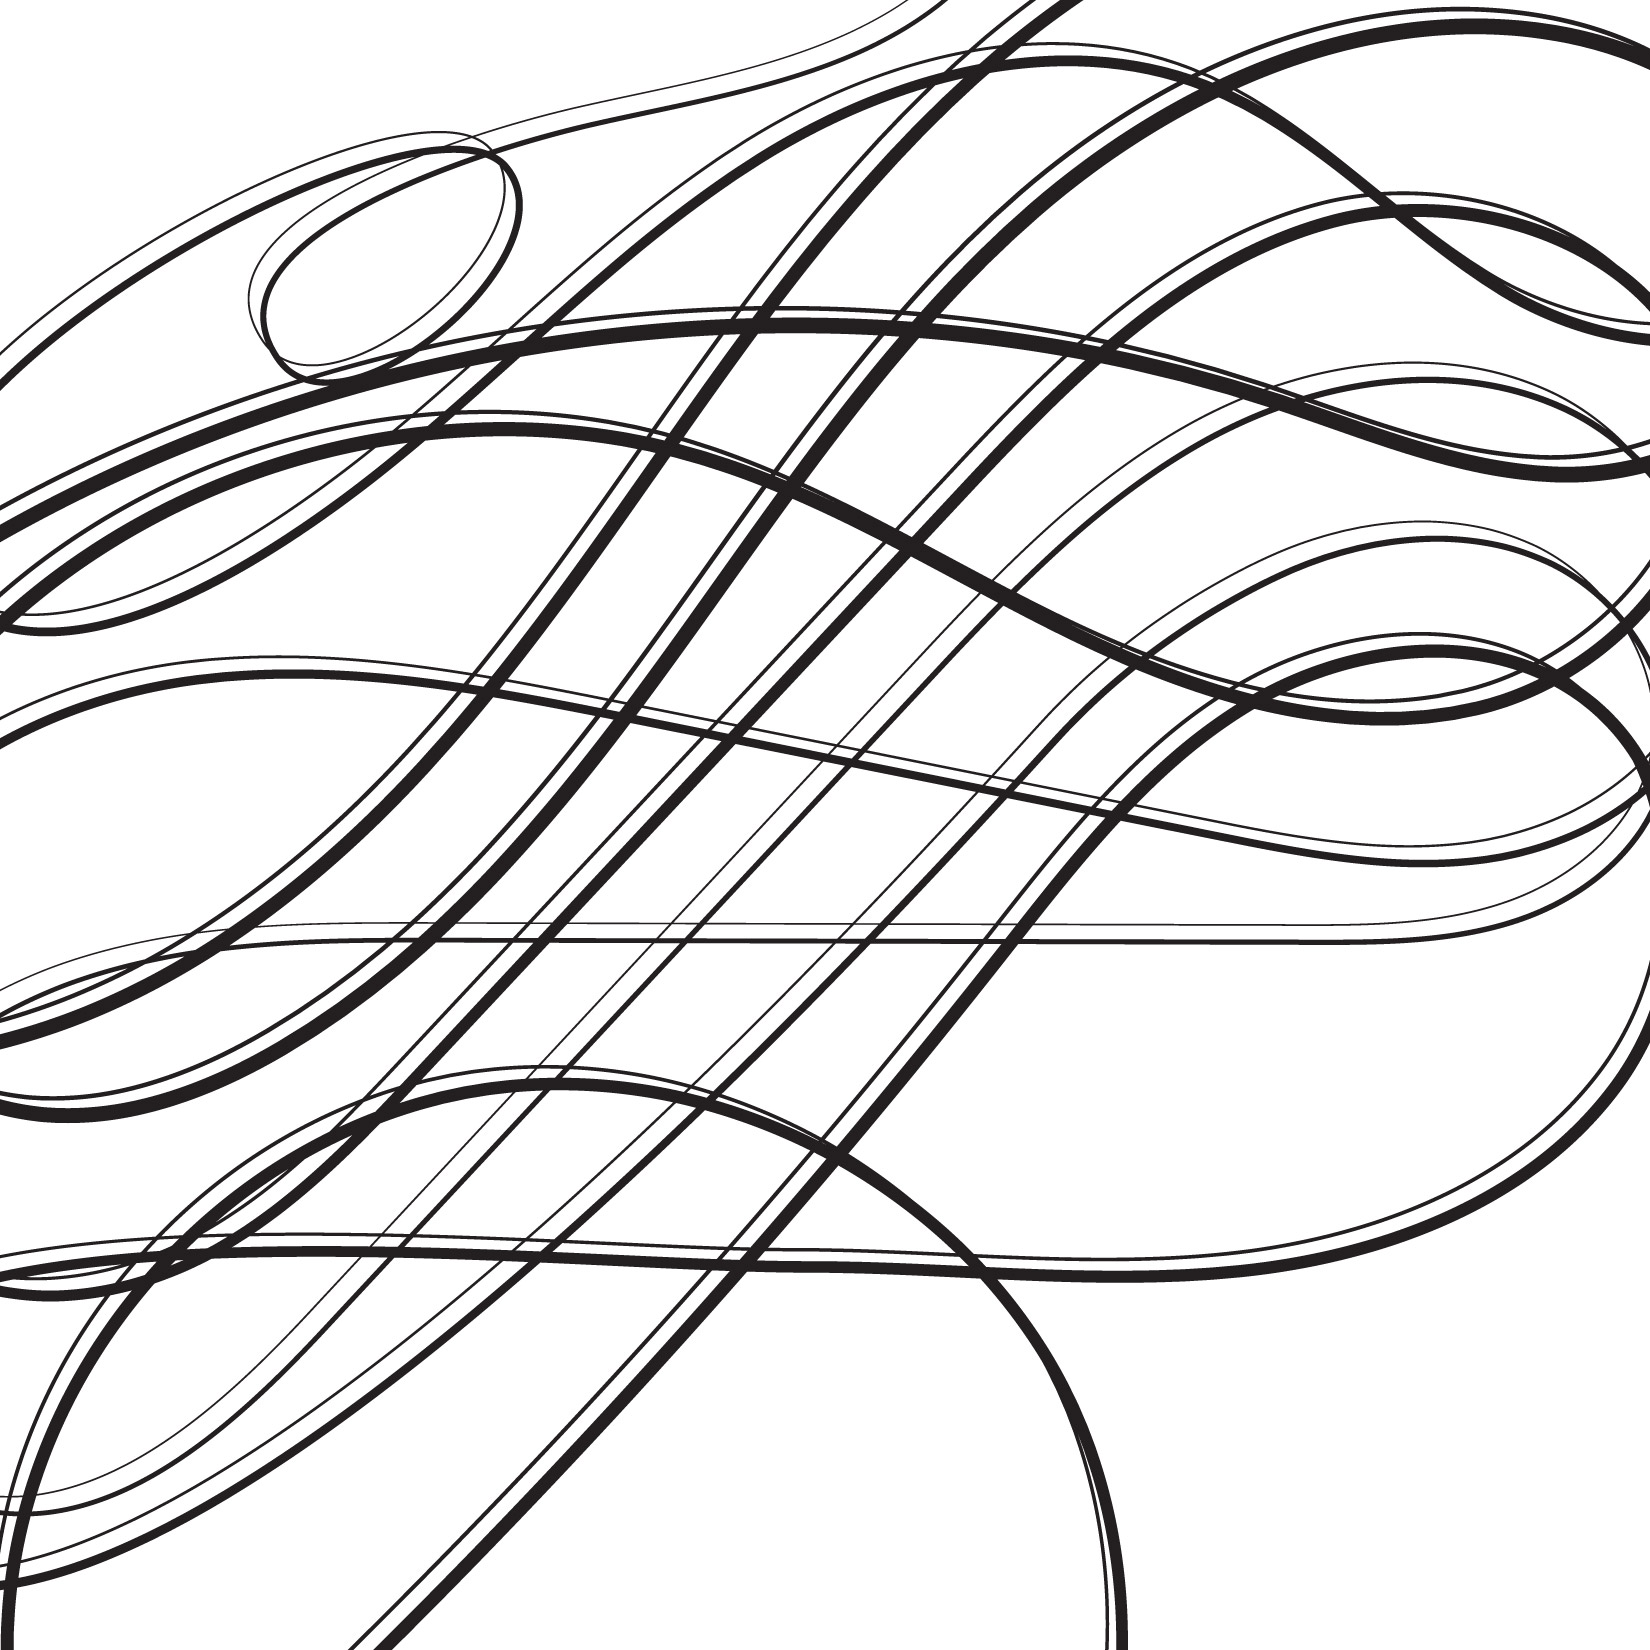 day 310: calligraphic lines